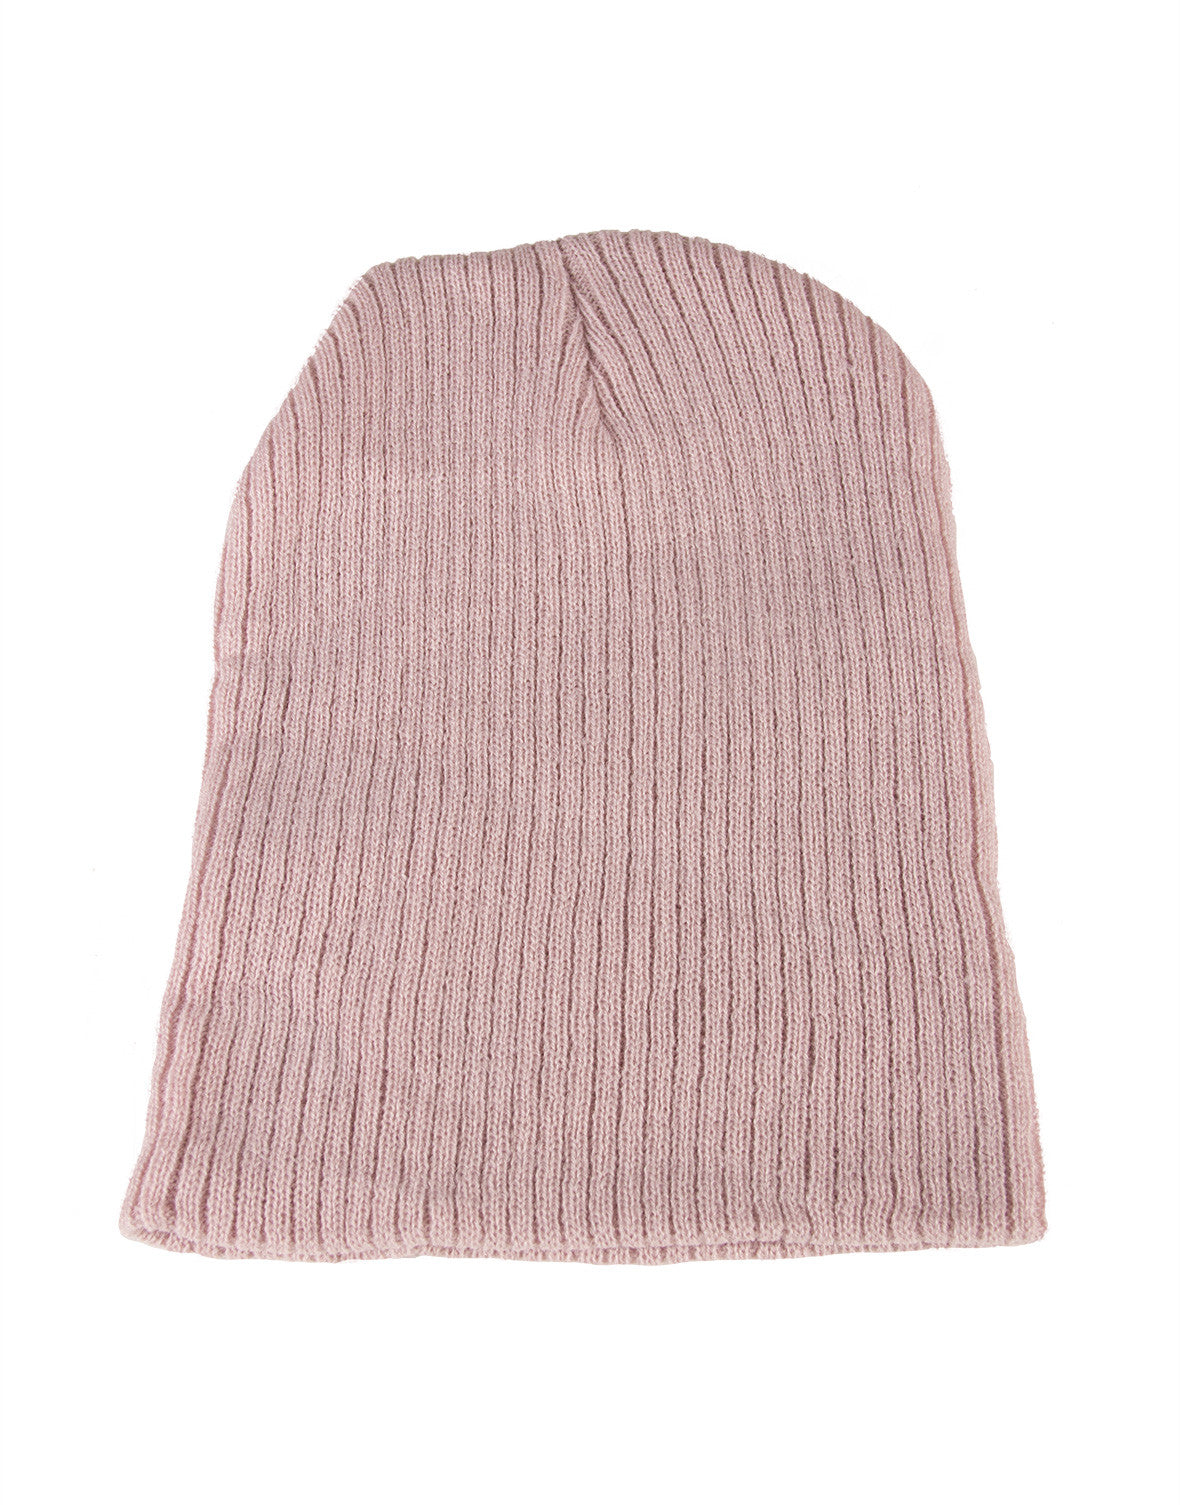 Ribbed Beanie - Pink - 2020AVE